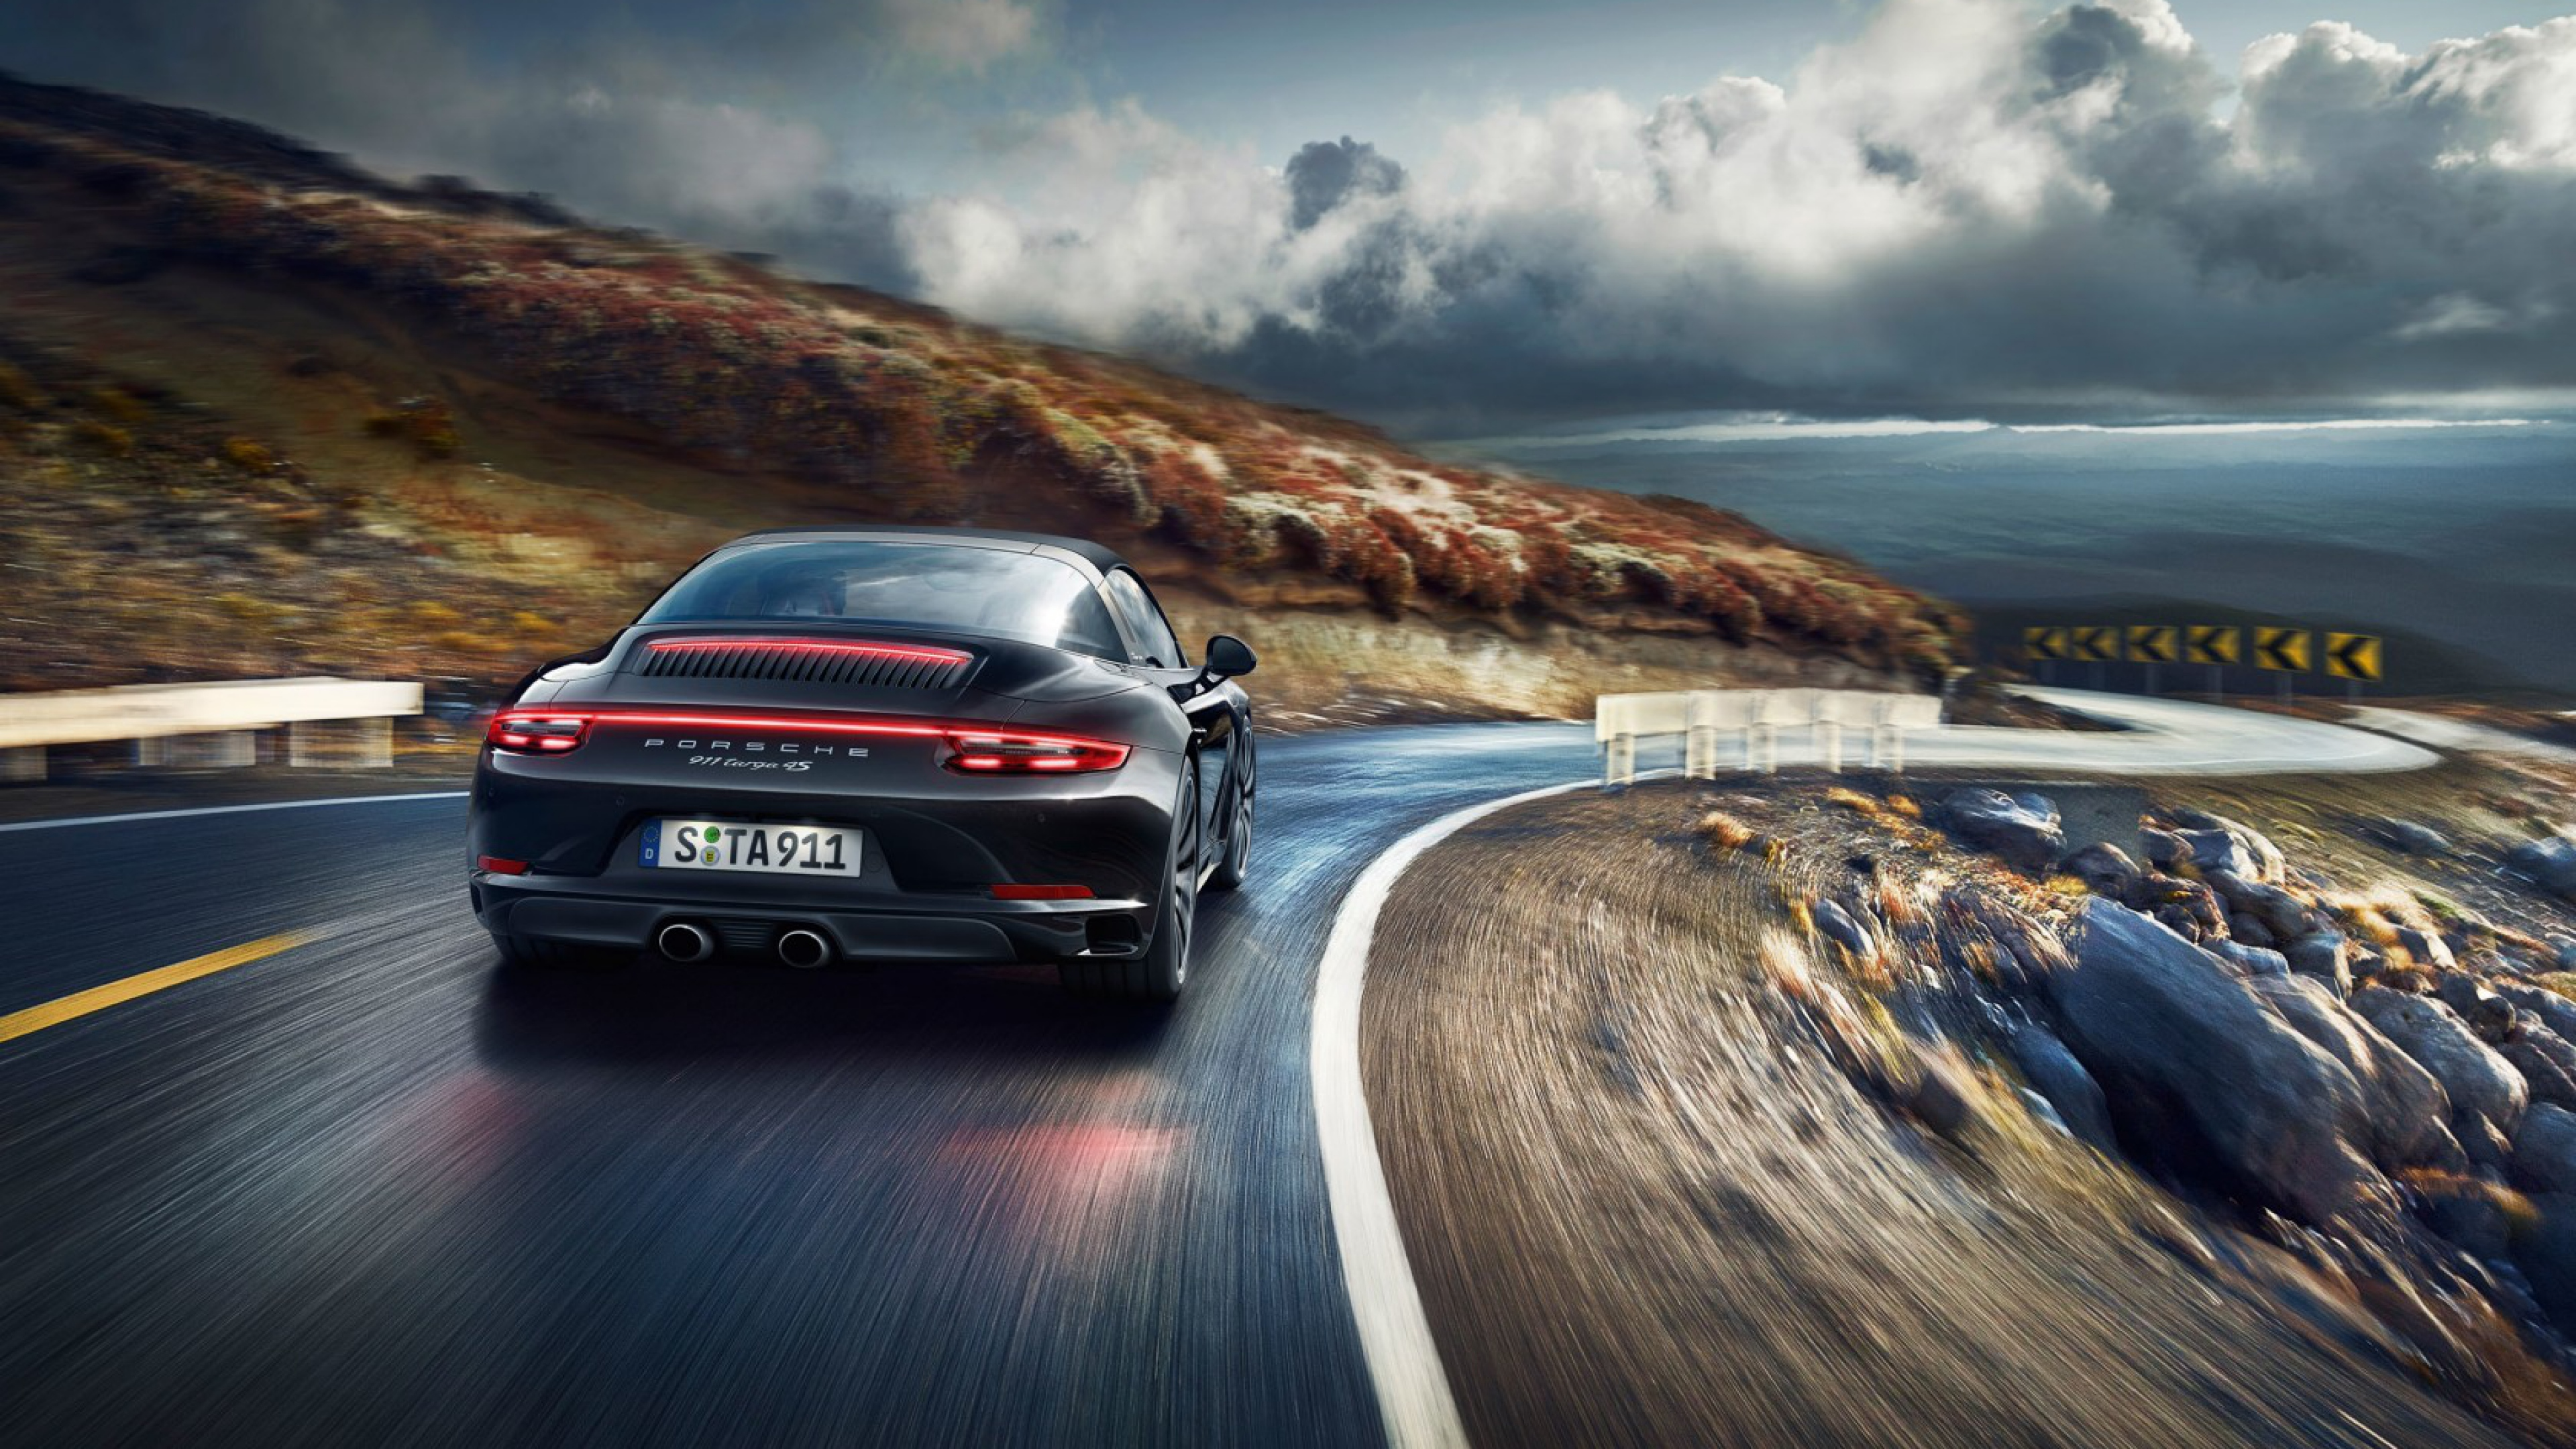 711 porsche-wallpapers, cars-wallpapers